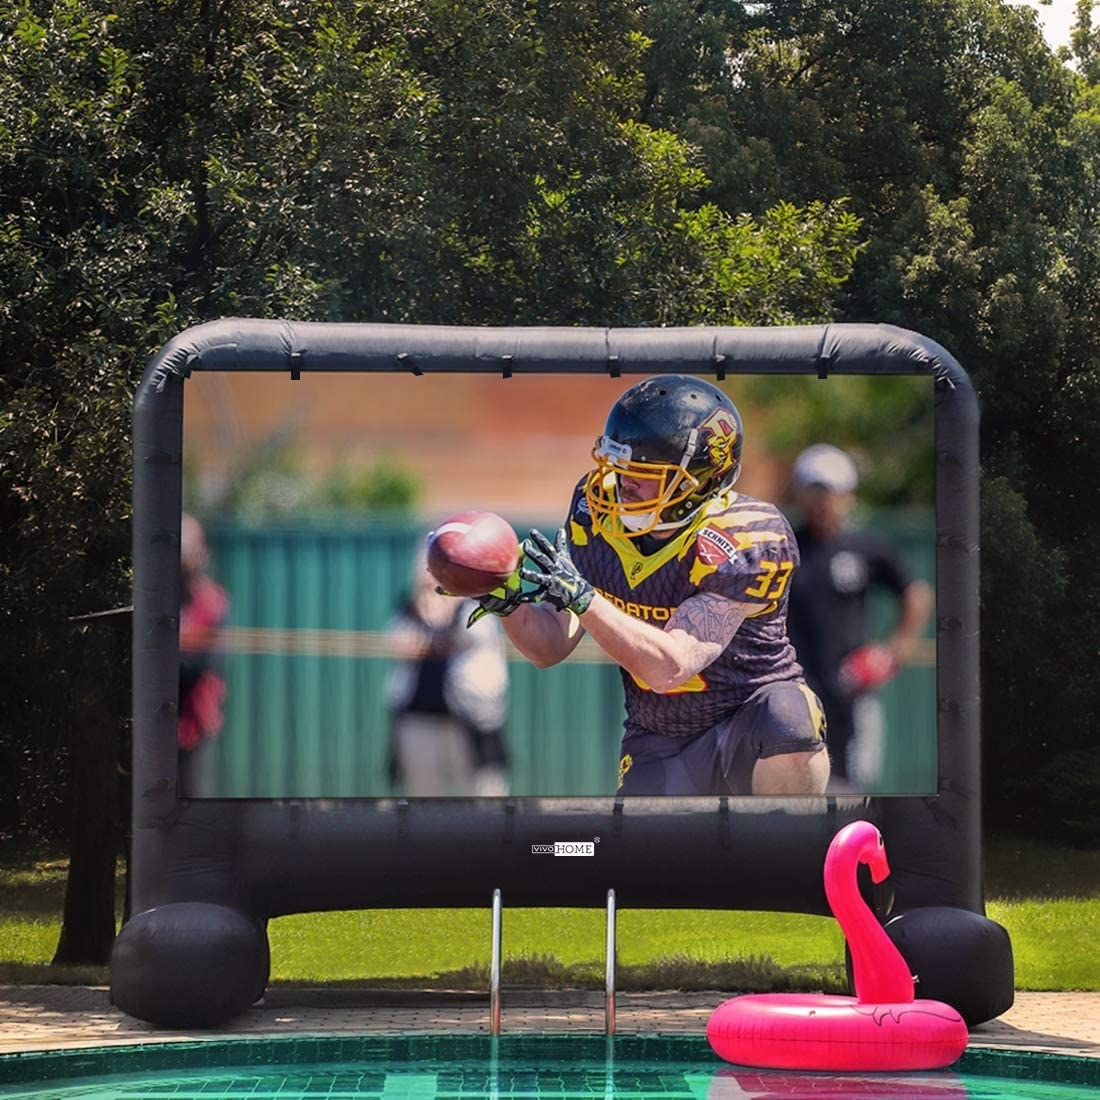 the blow up screen showing a football game